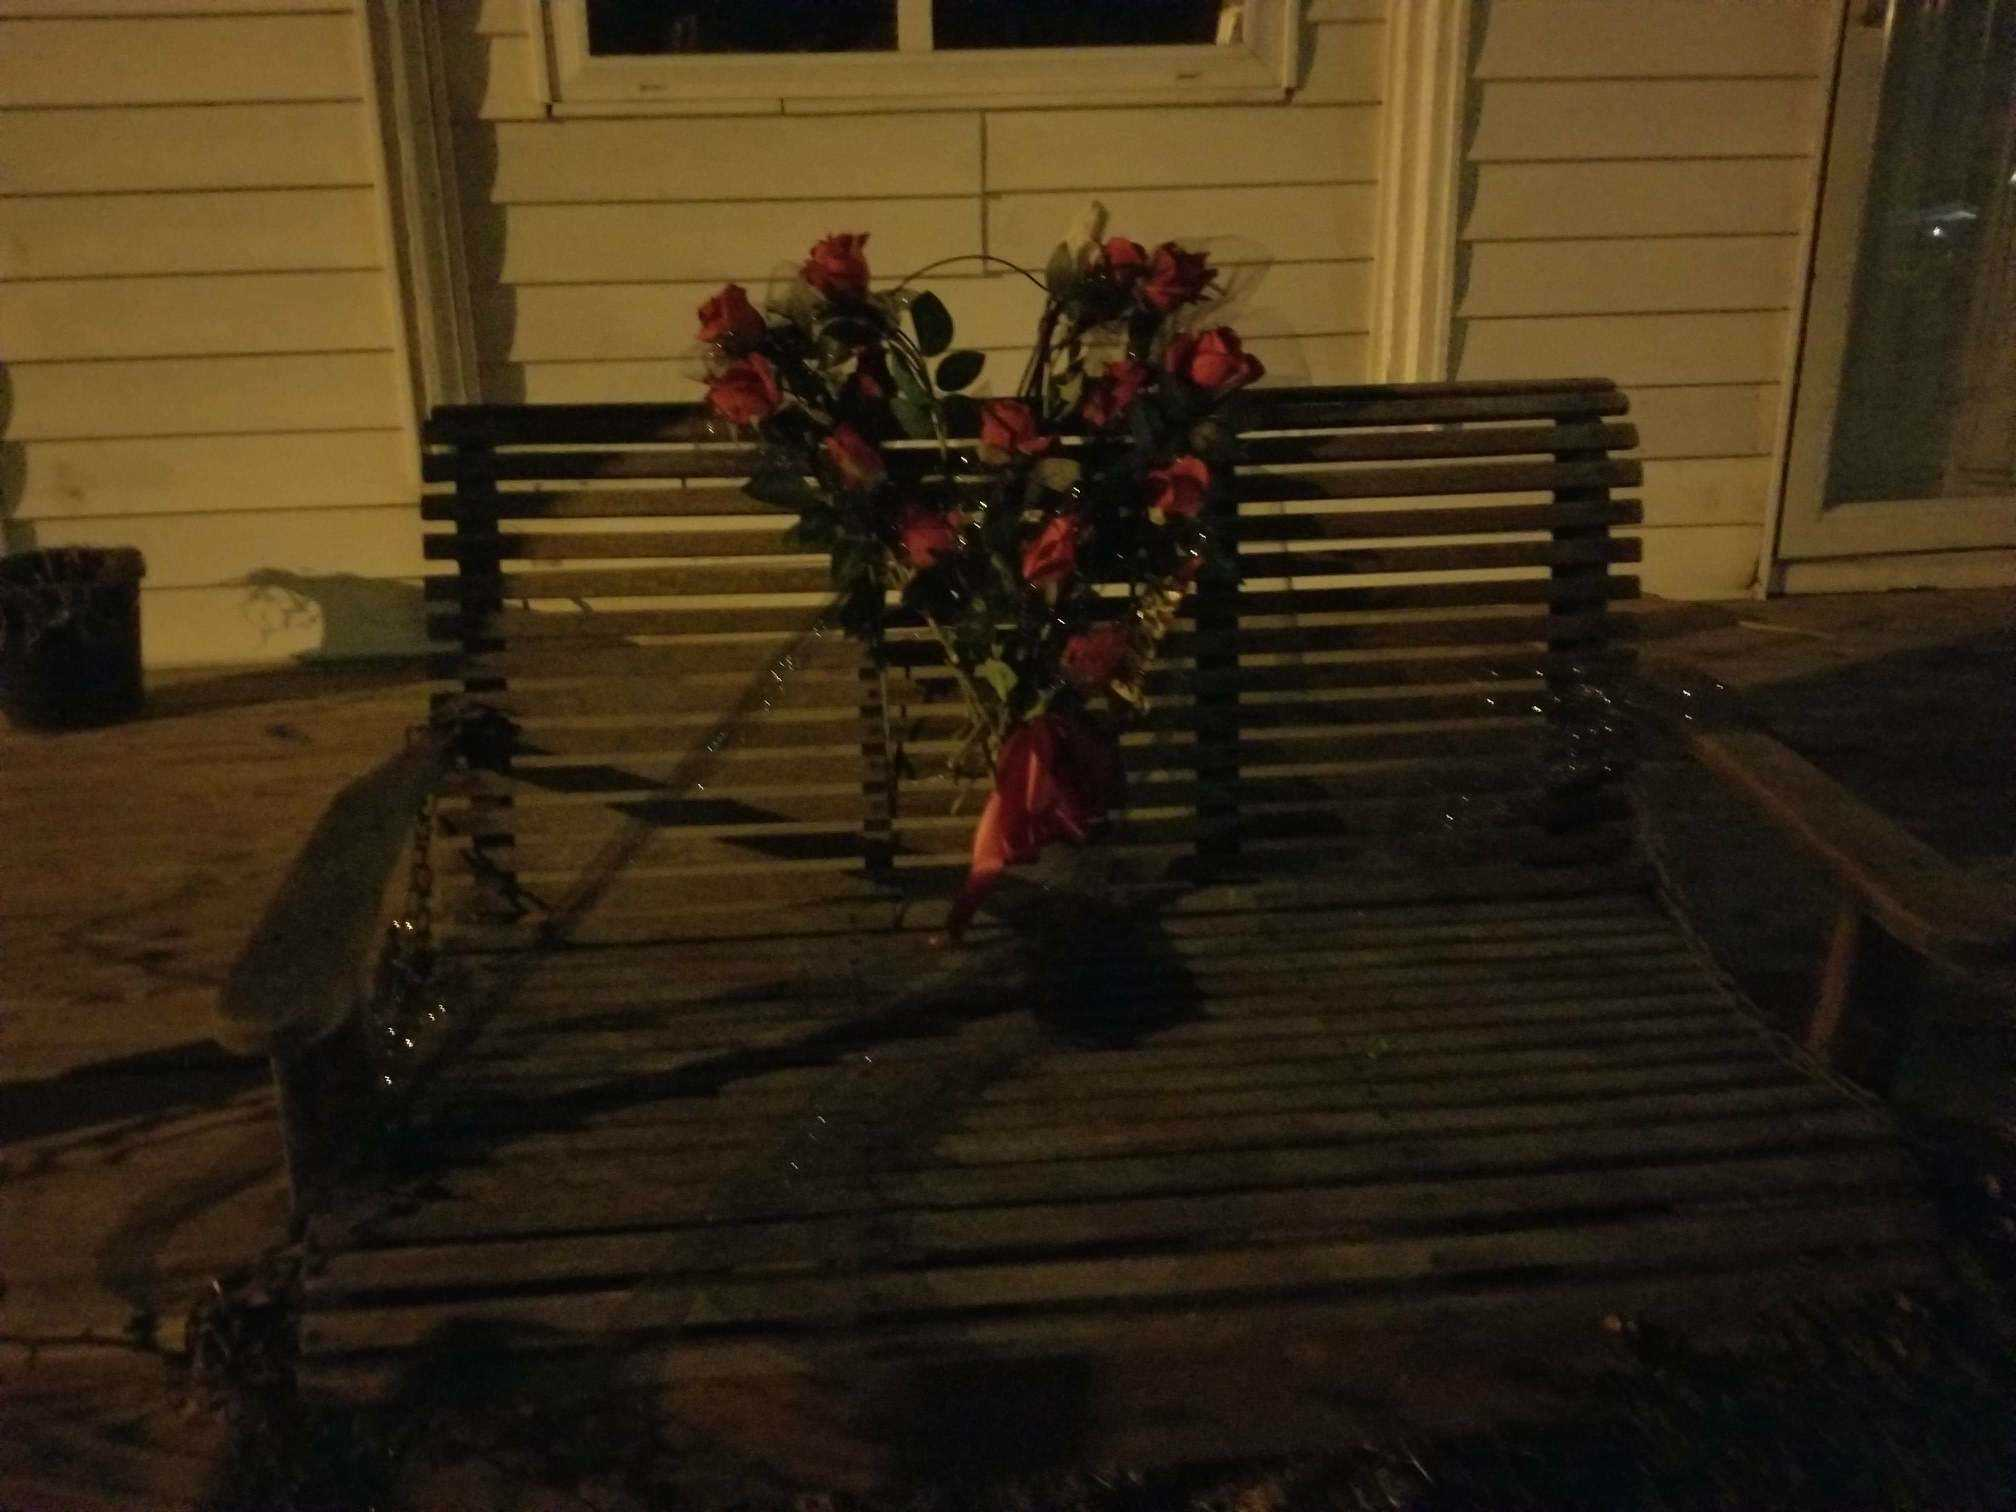 Stolen porch swing and memorial for grandmother returned to family